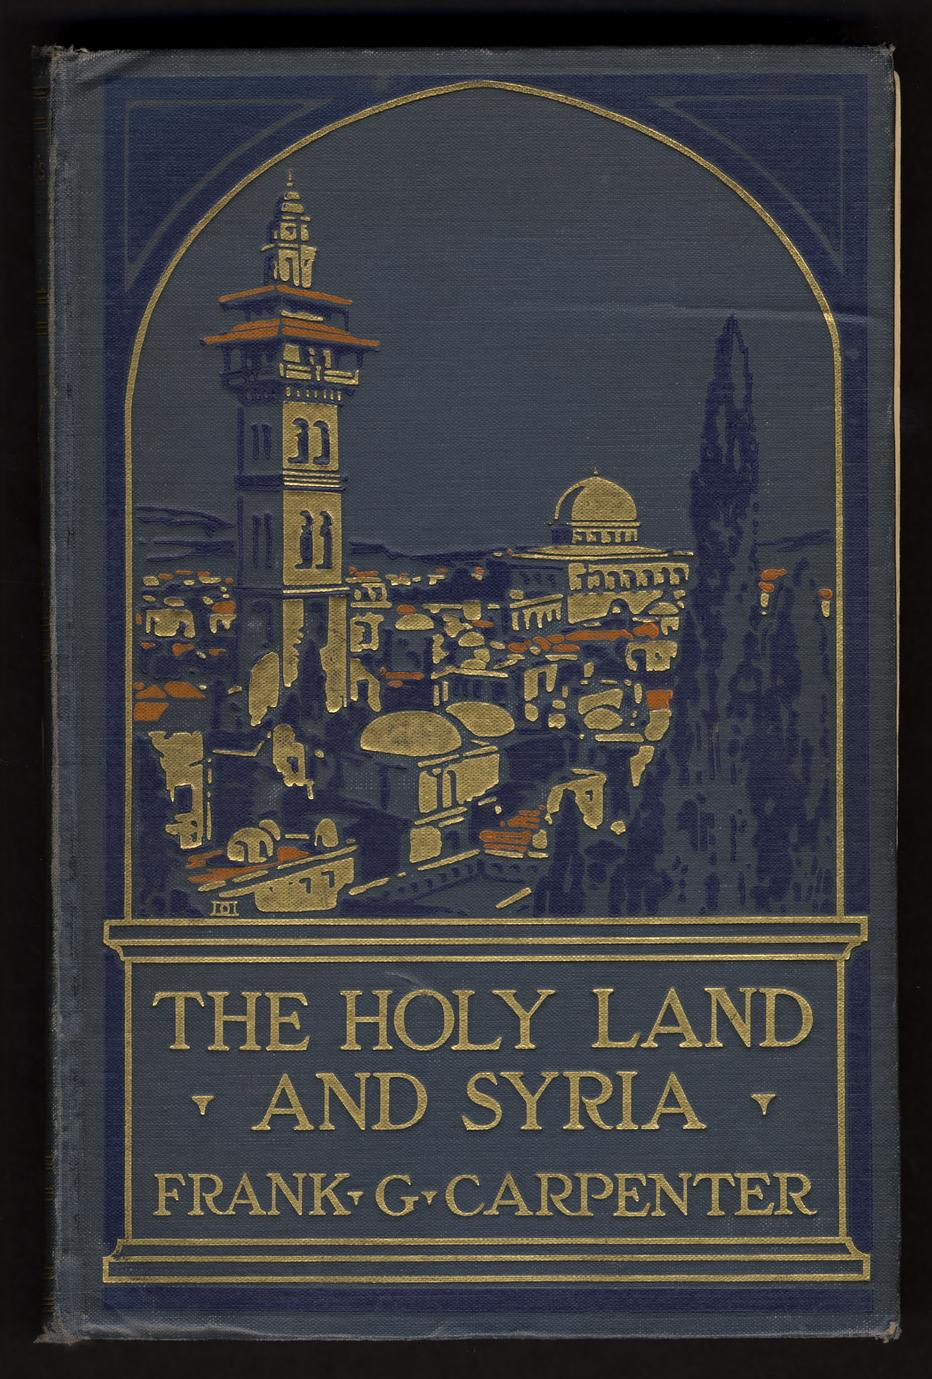 The Holy Land and Syria (1 of 2)